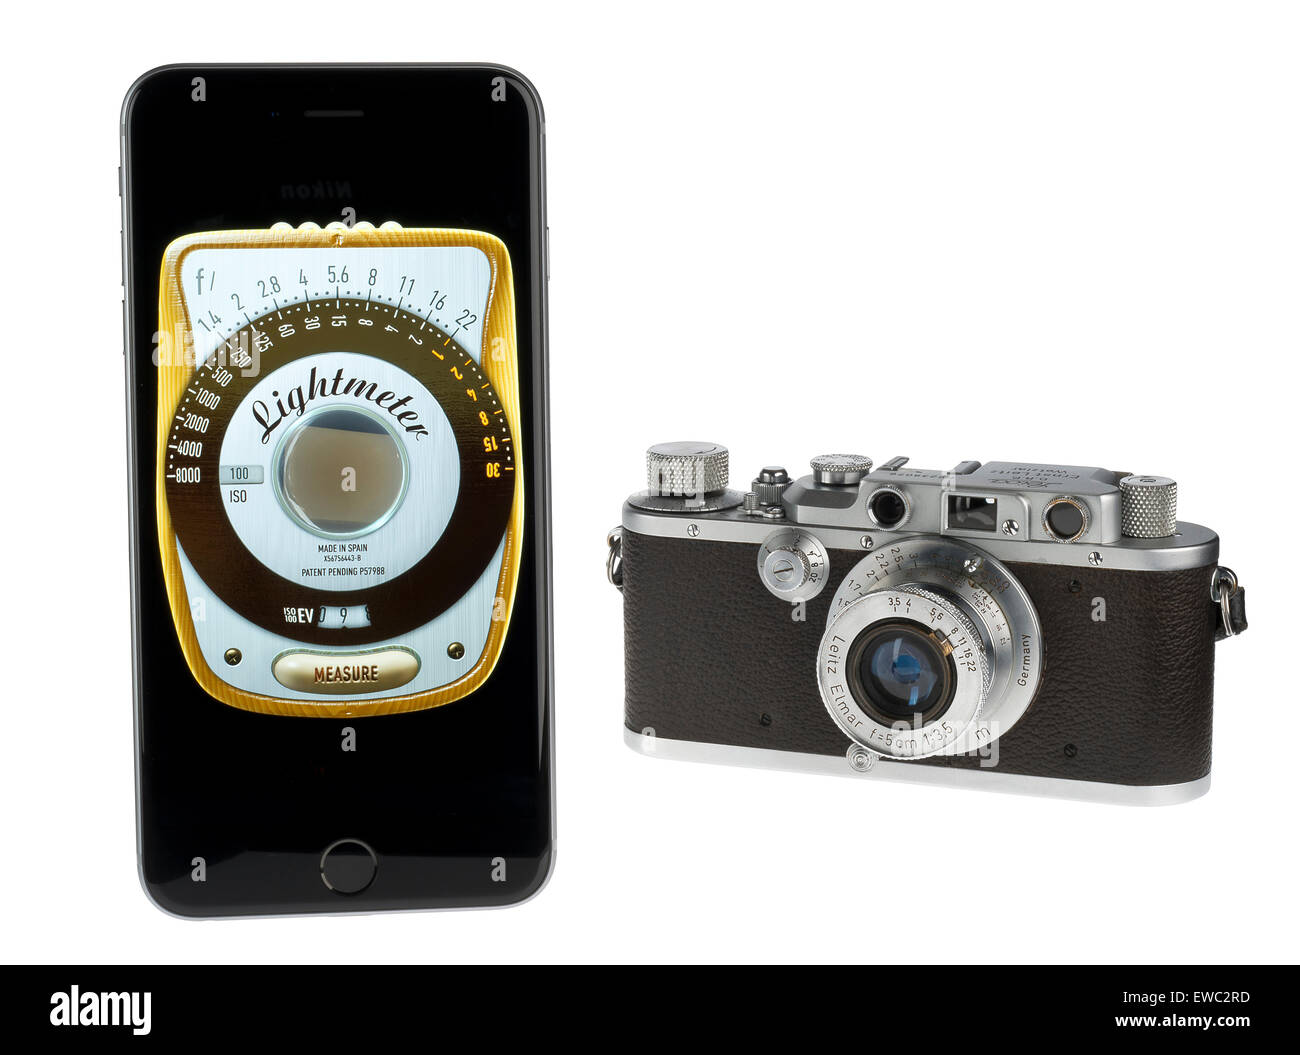 Old Leica camera and a modern light meter application on a smartphone. - Stock Image